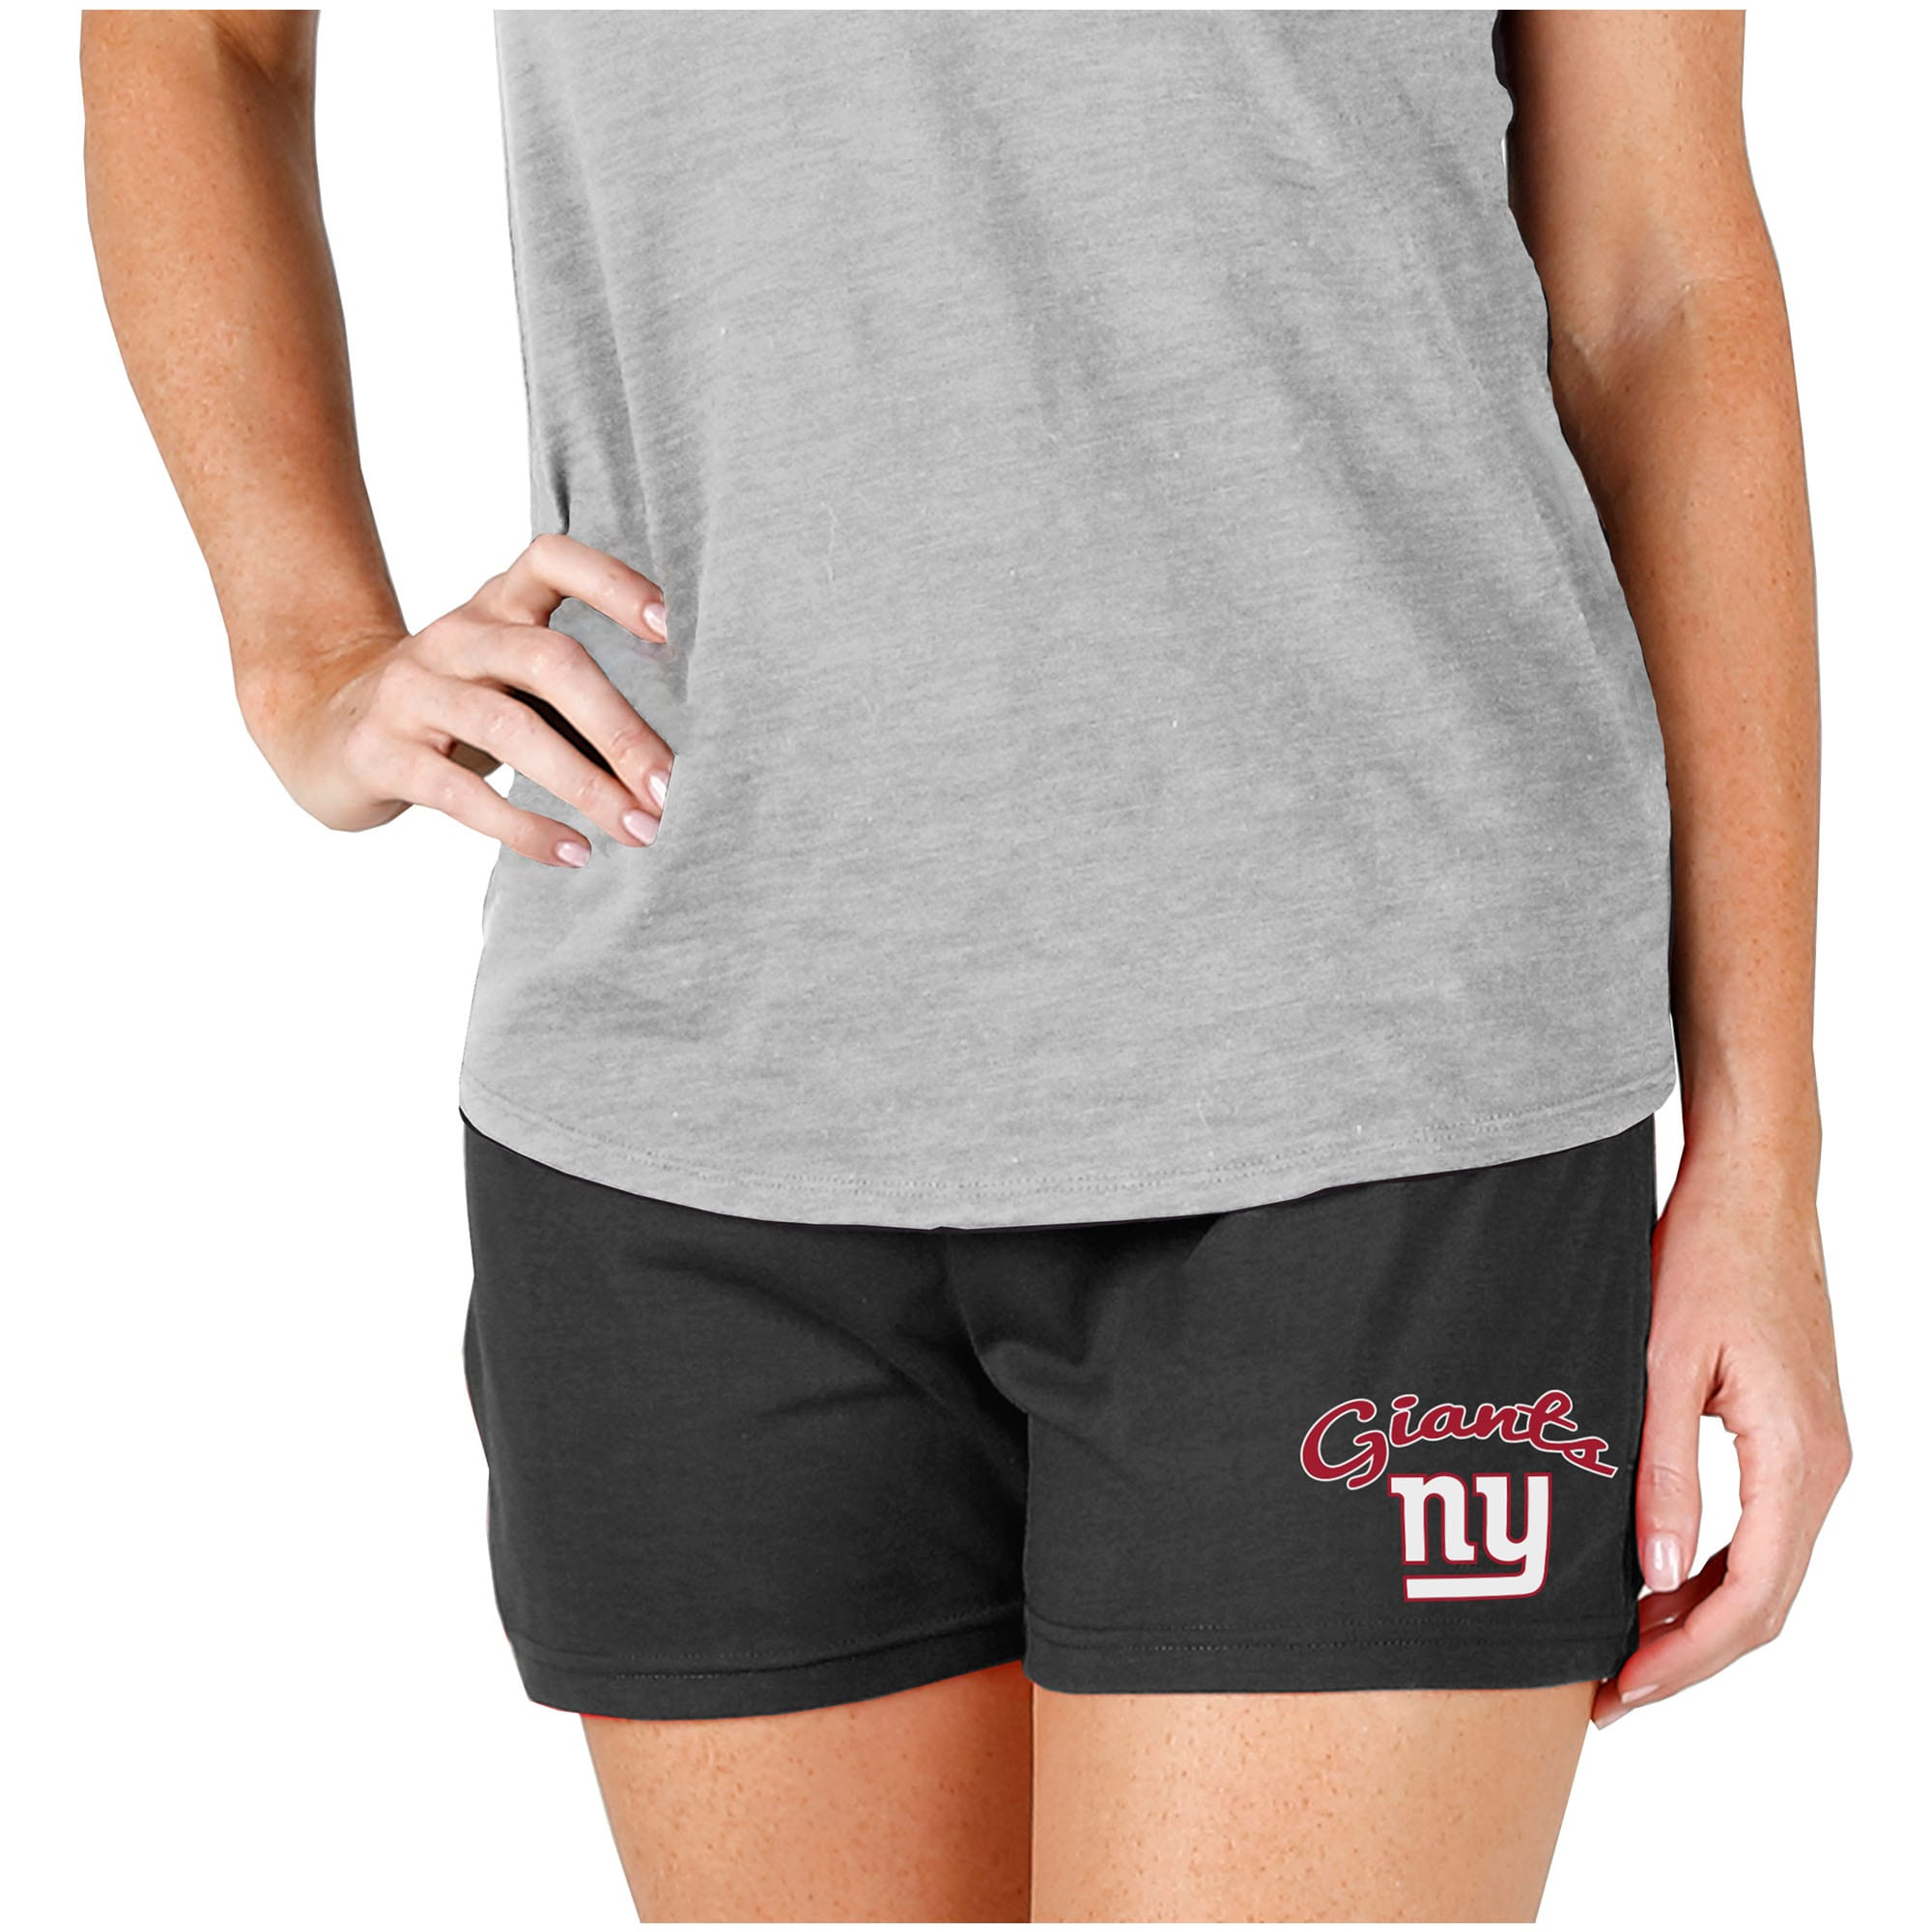 New York Giants Concepts Sport Women's Knit Shorts - Charcoal